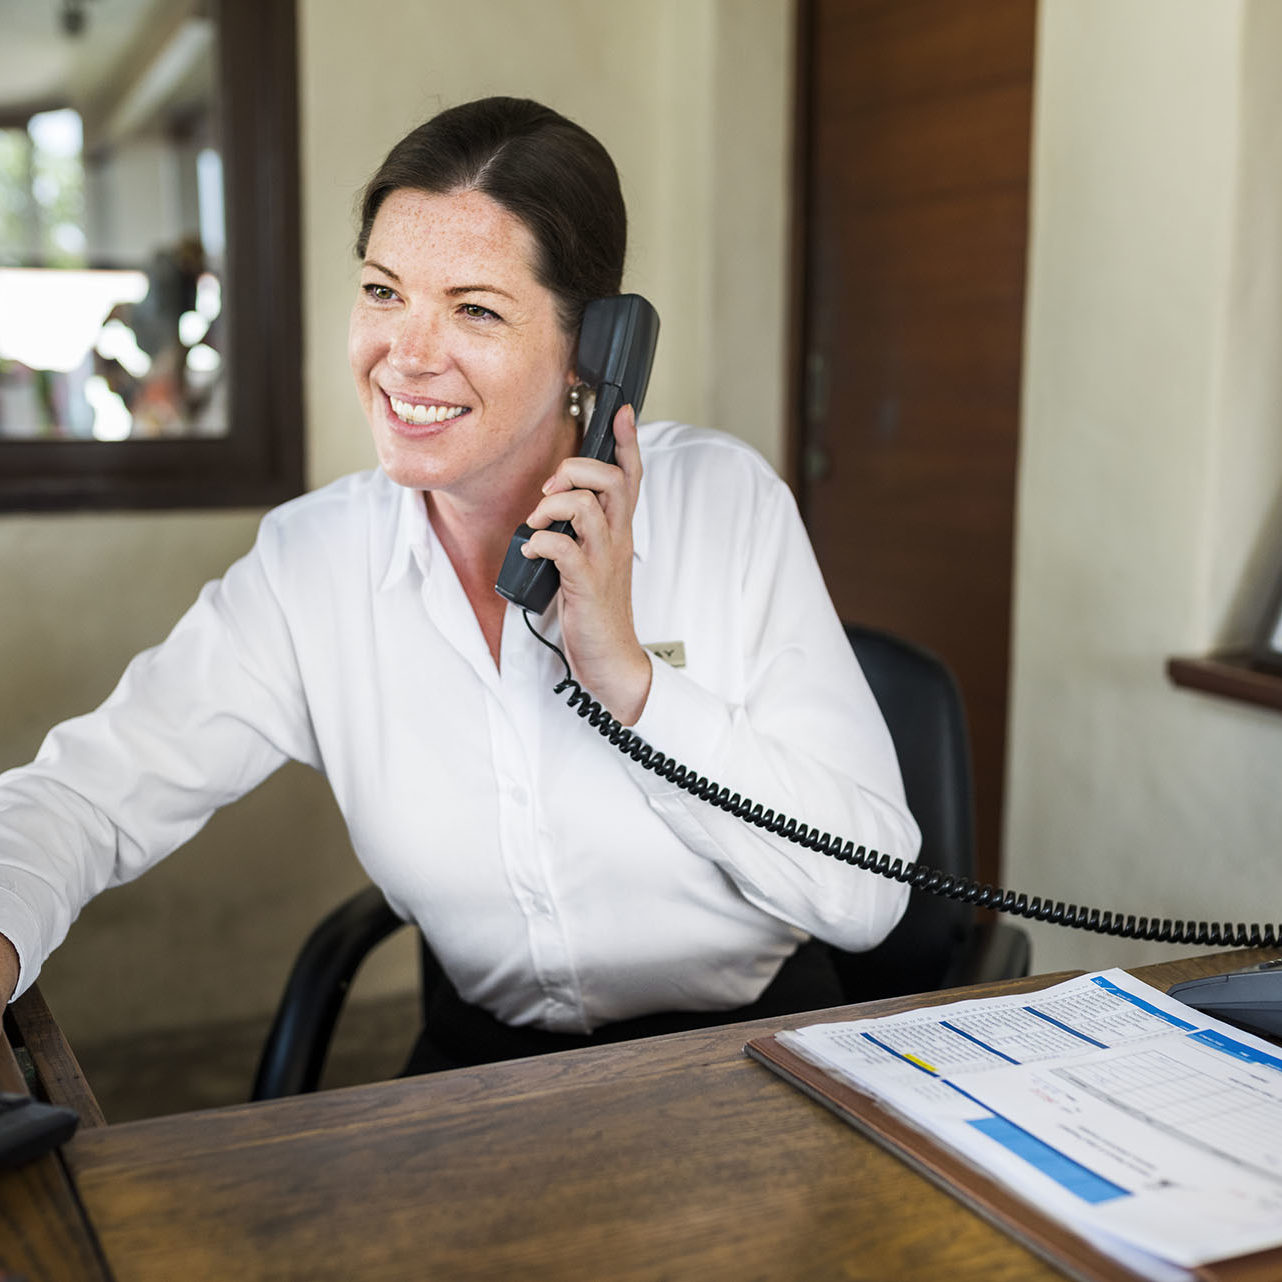 Female resort receptionist working at the front desk